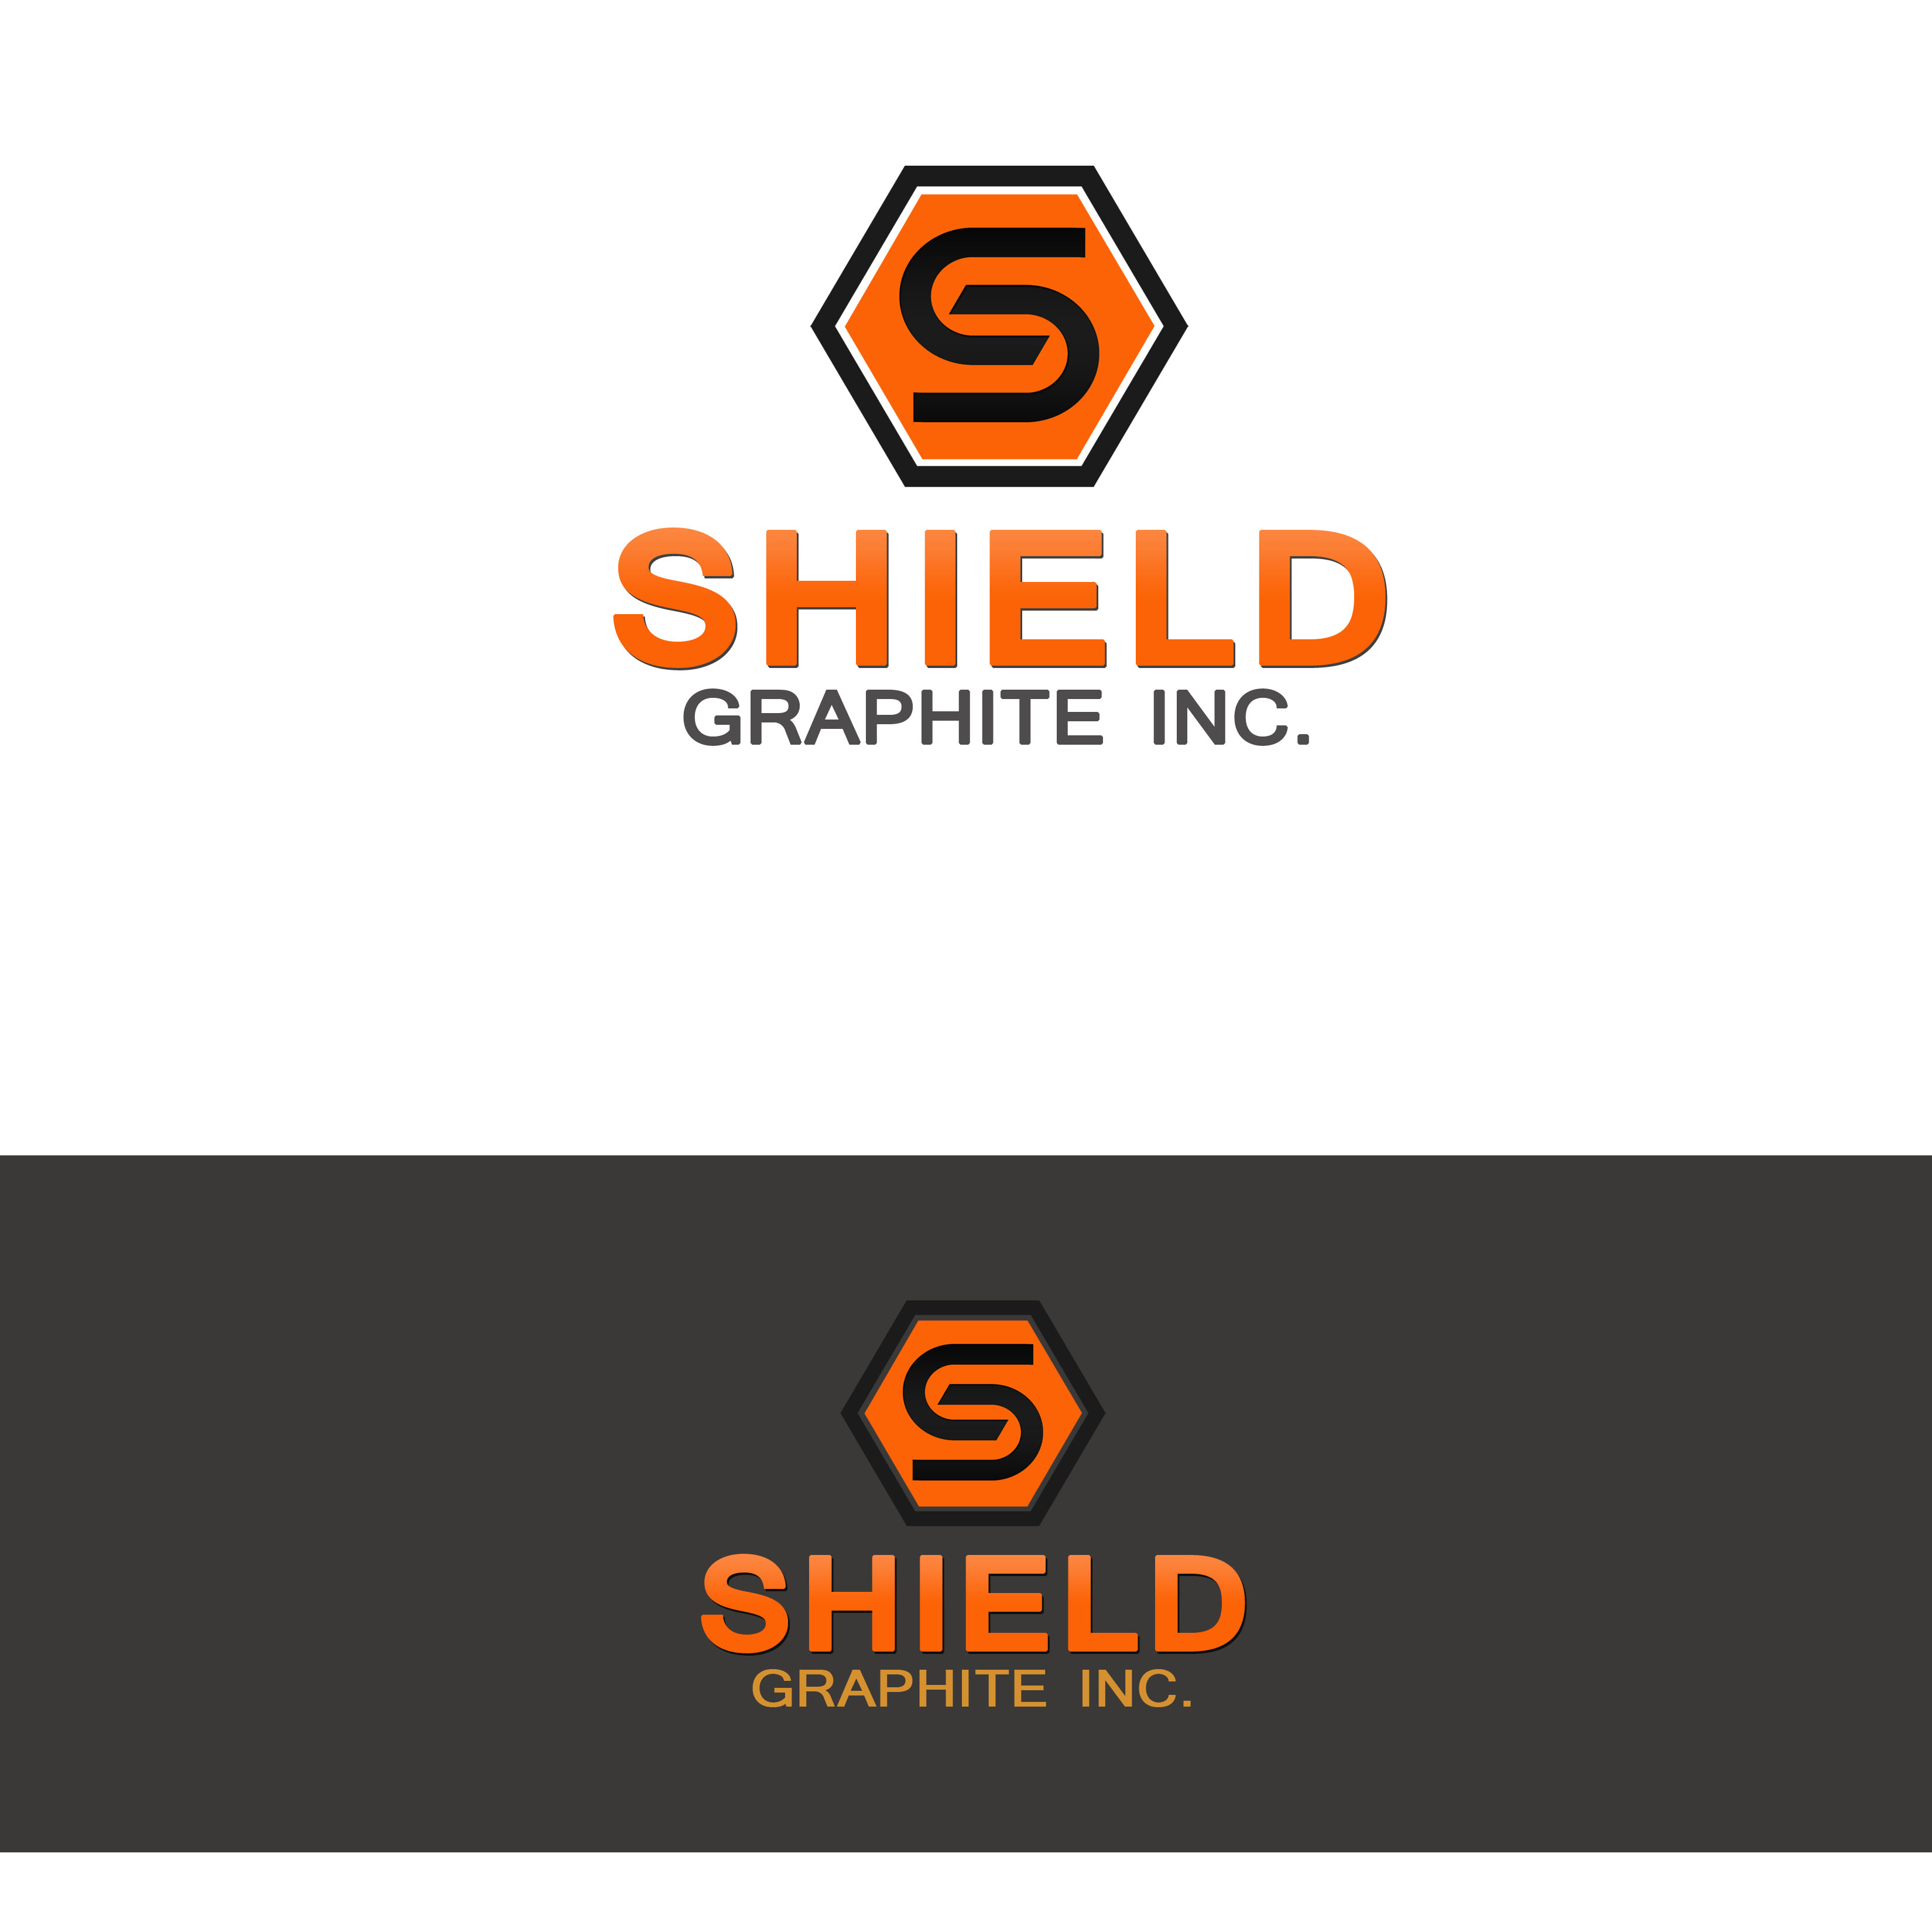 Logo Design by Allan Esclamado - Entry No. 119 in the Logo Design Contest Imaginative Logo Design for Shield Graphite Inc..